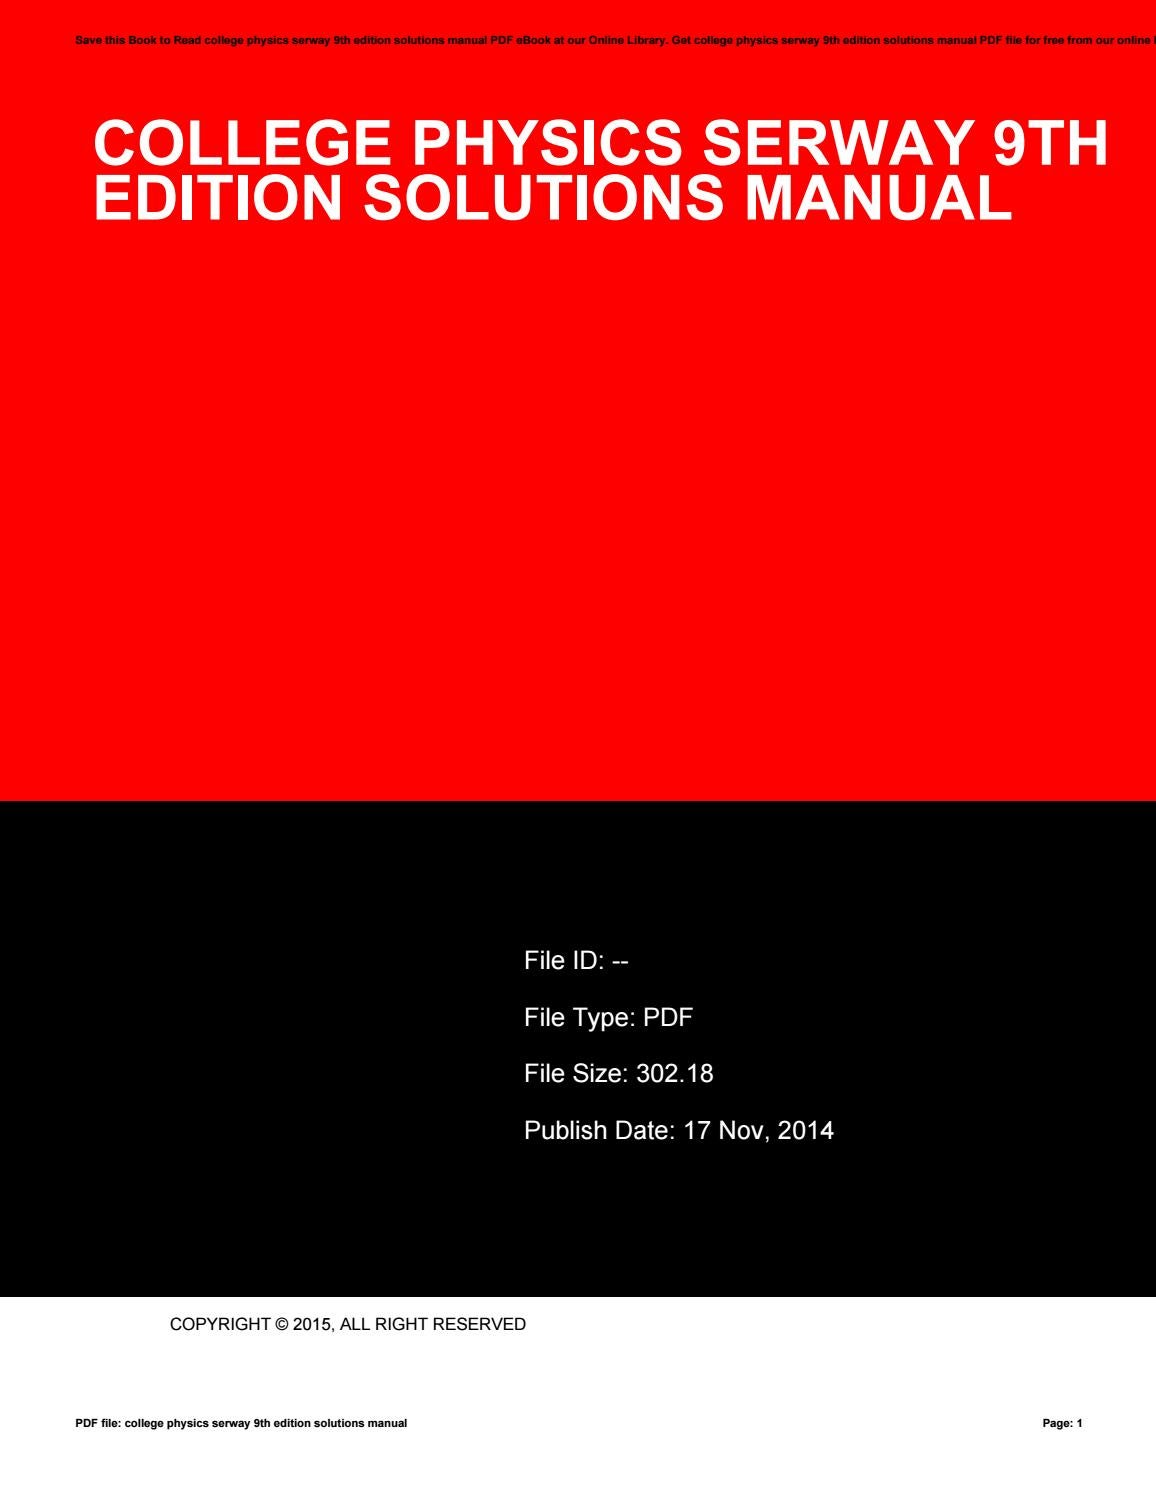 College physics serway 9th edition solutions manual by ahsu87haha - issuu